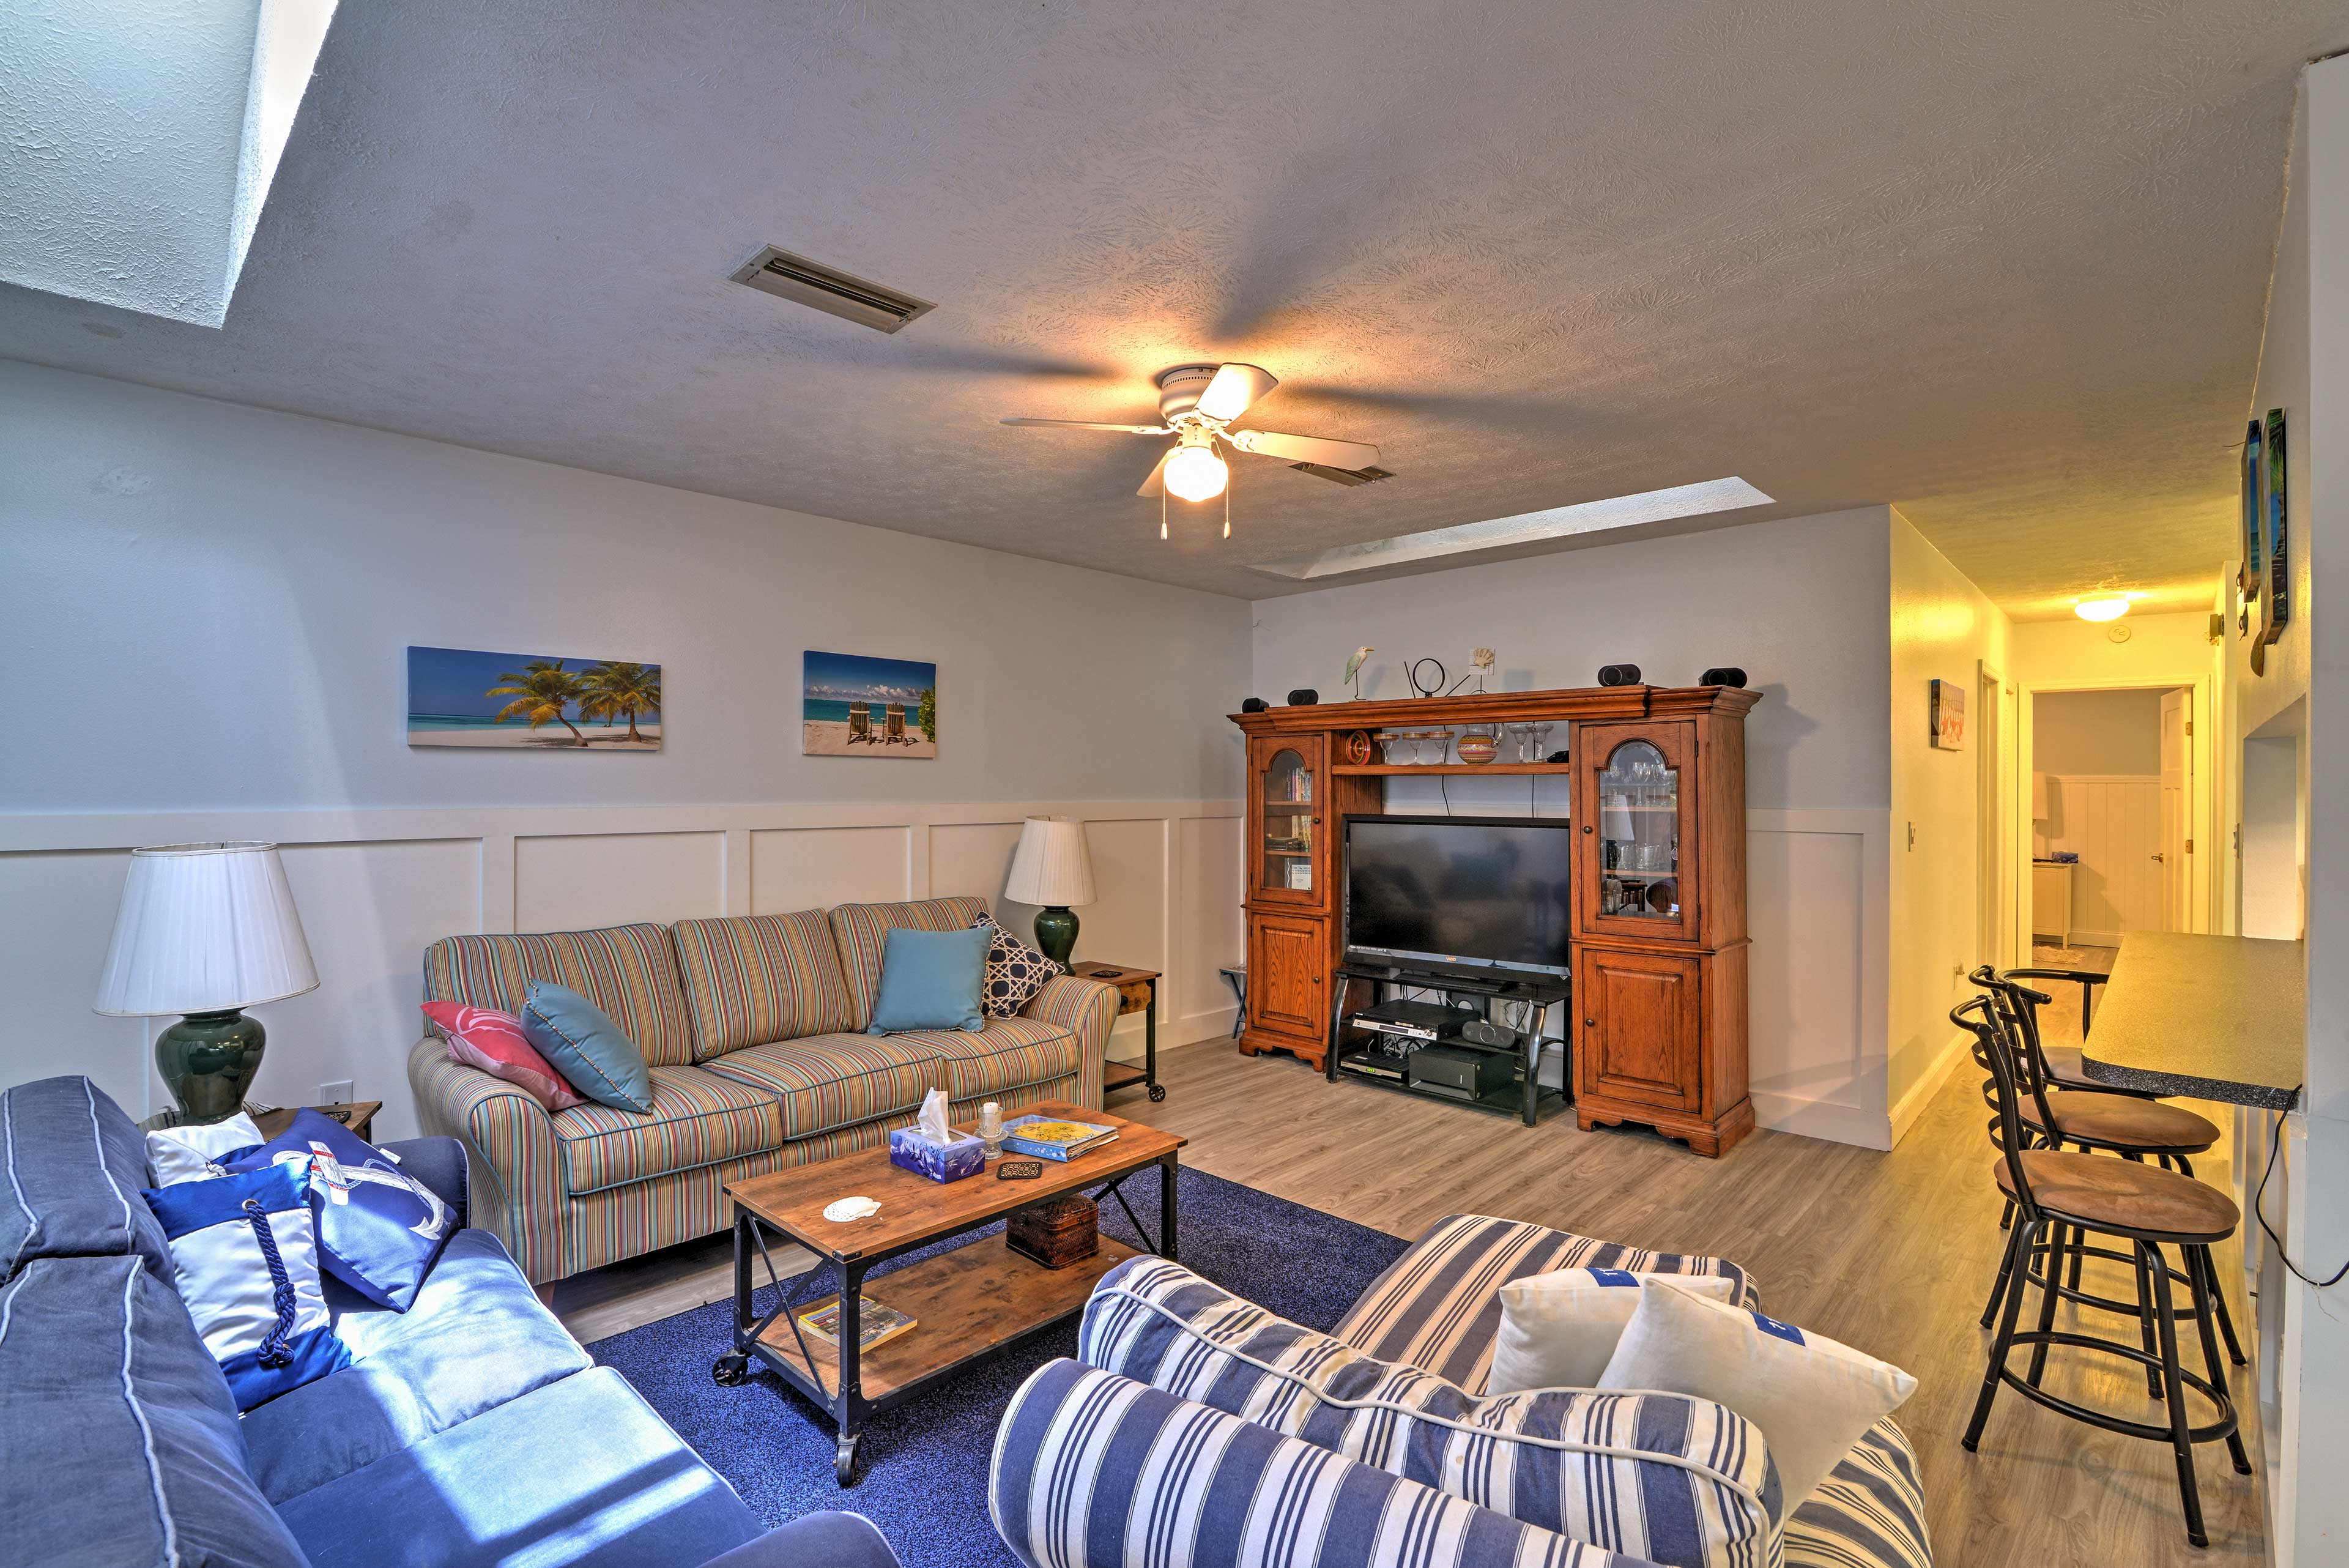 The living room offers couches, a chaise lounge chair & a flat-screen cable TV.